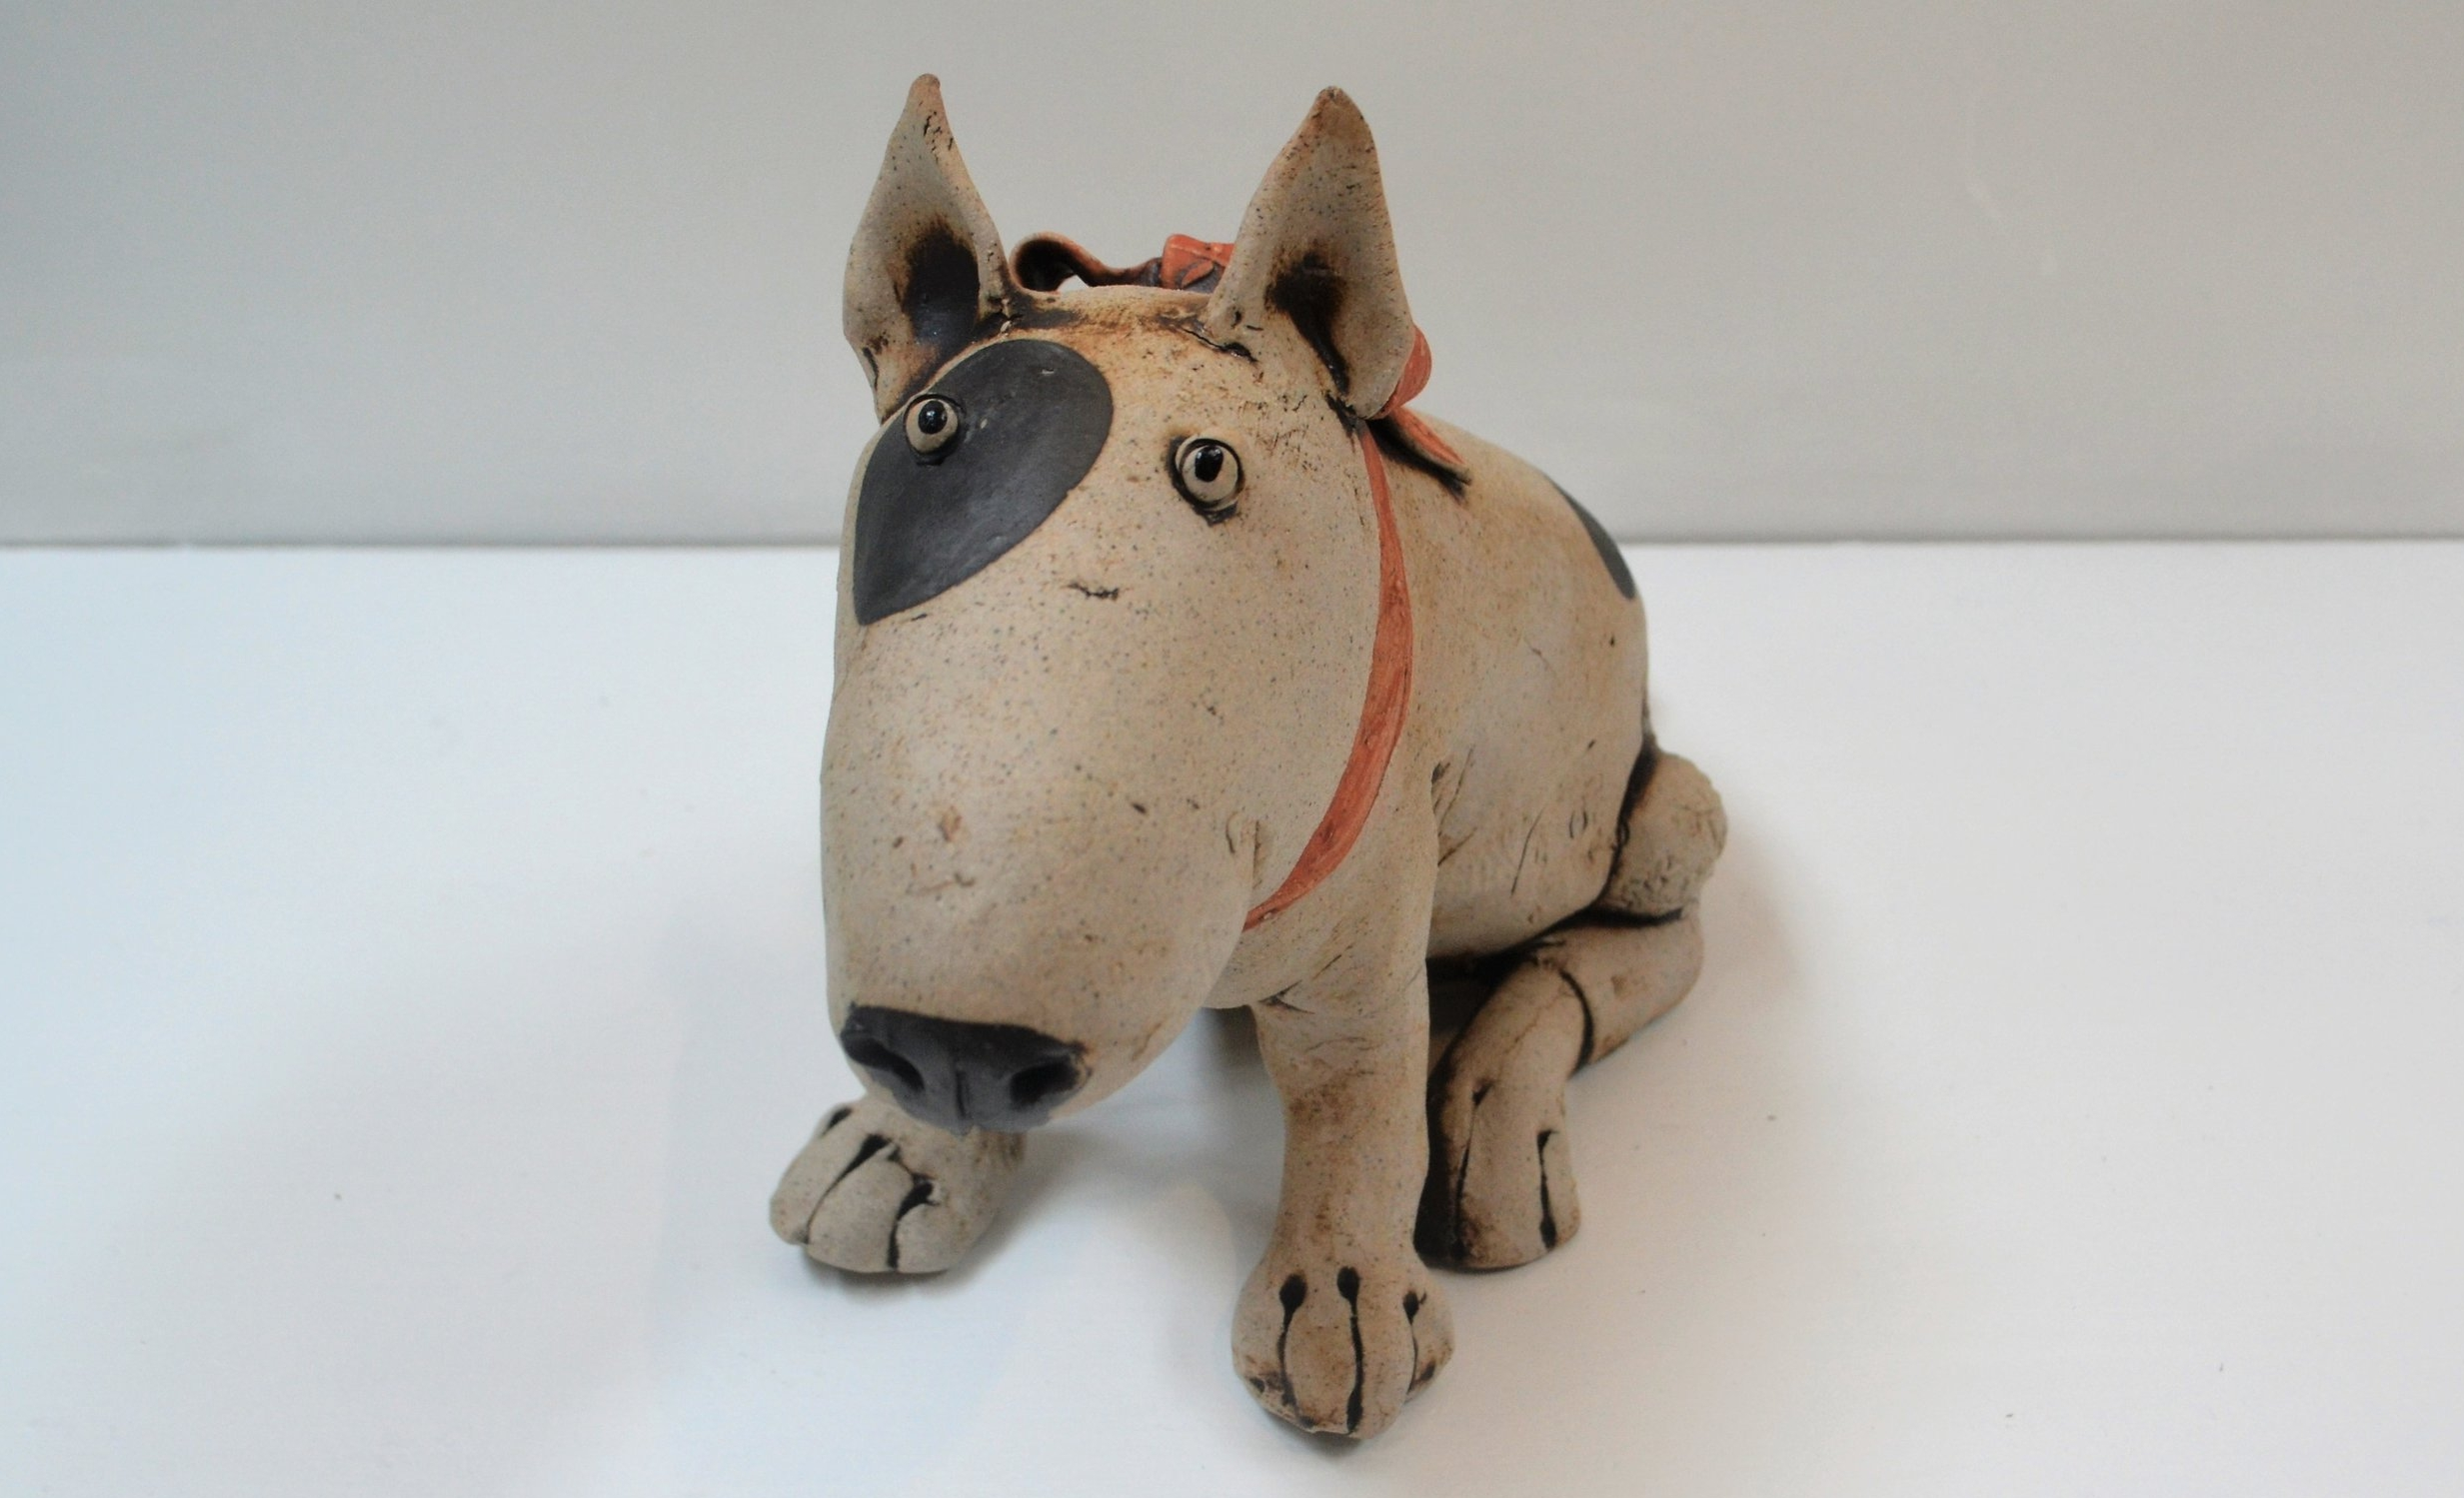 Bull Terrier III  Fiona Tunnicliffe, hand formed ceramic sculpture, 220mm height  sold